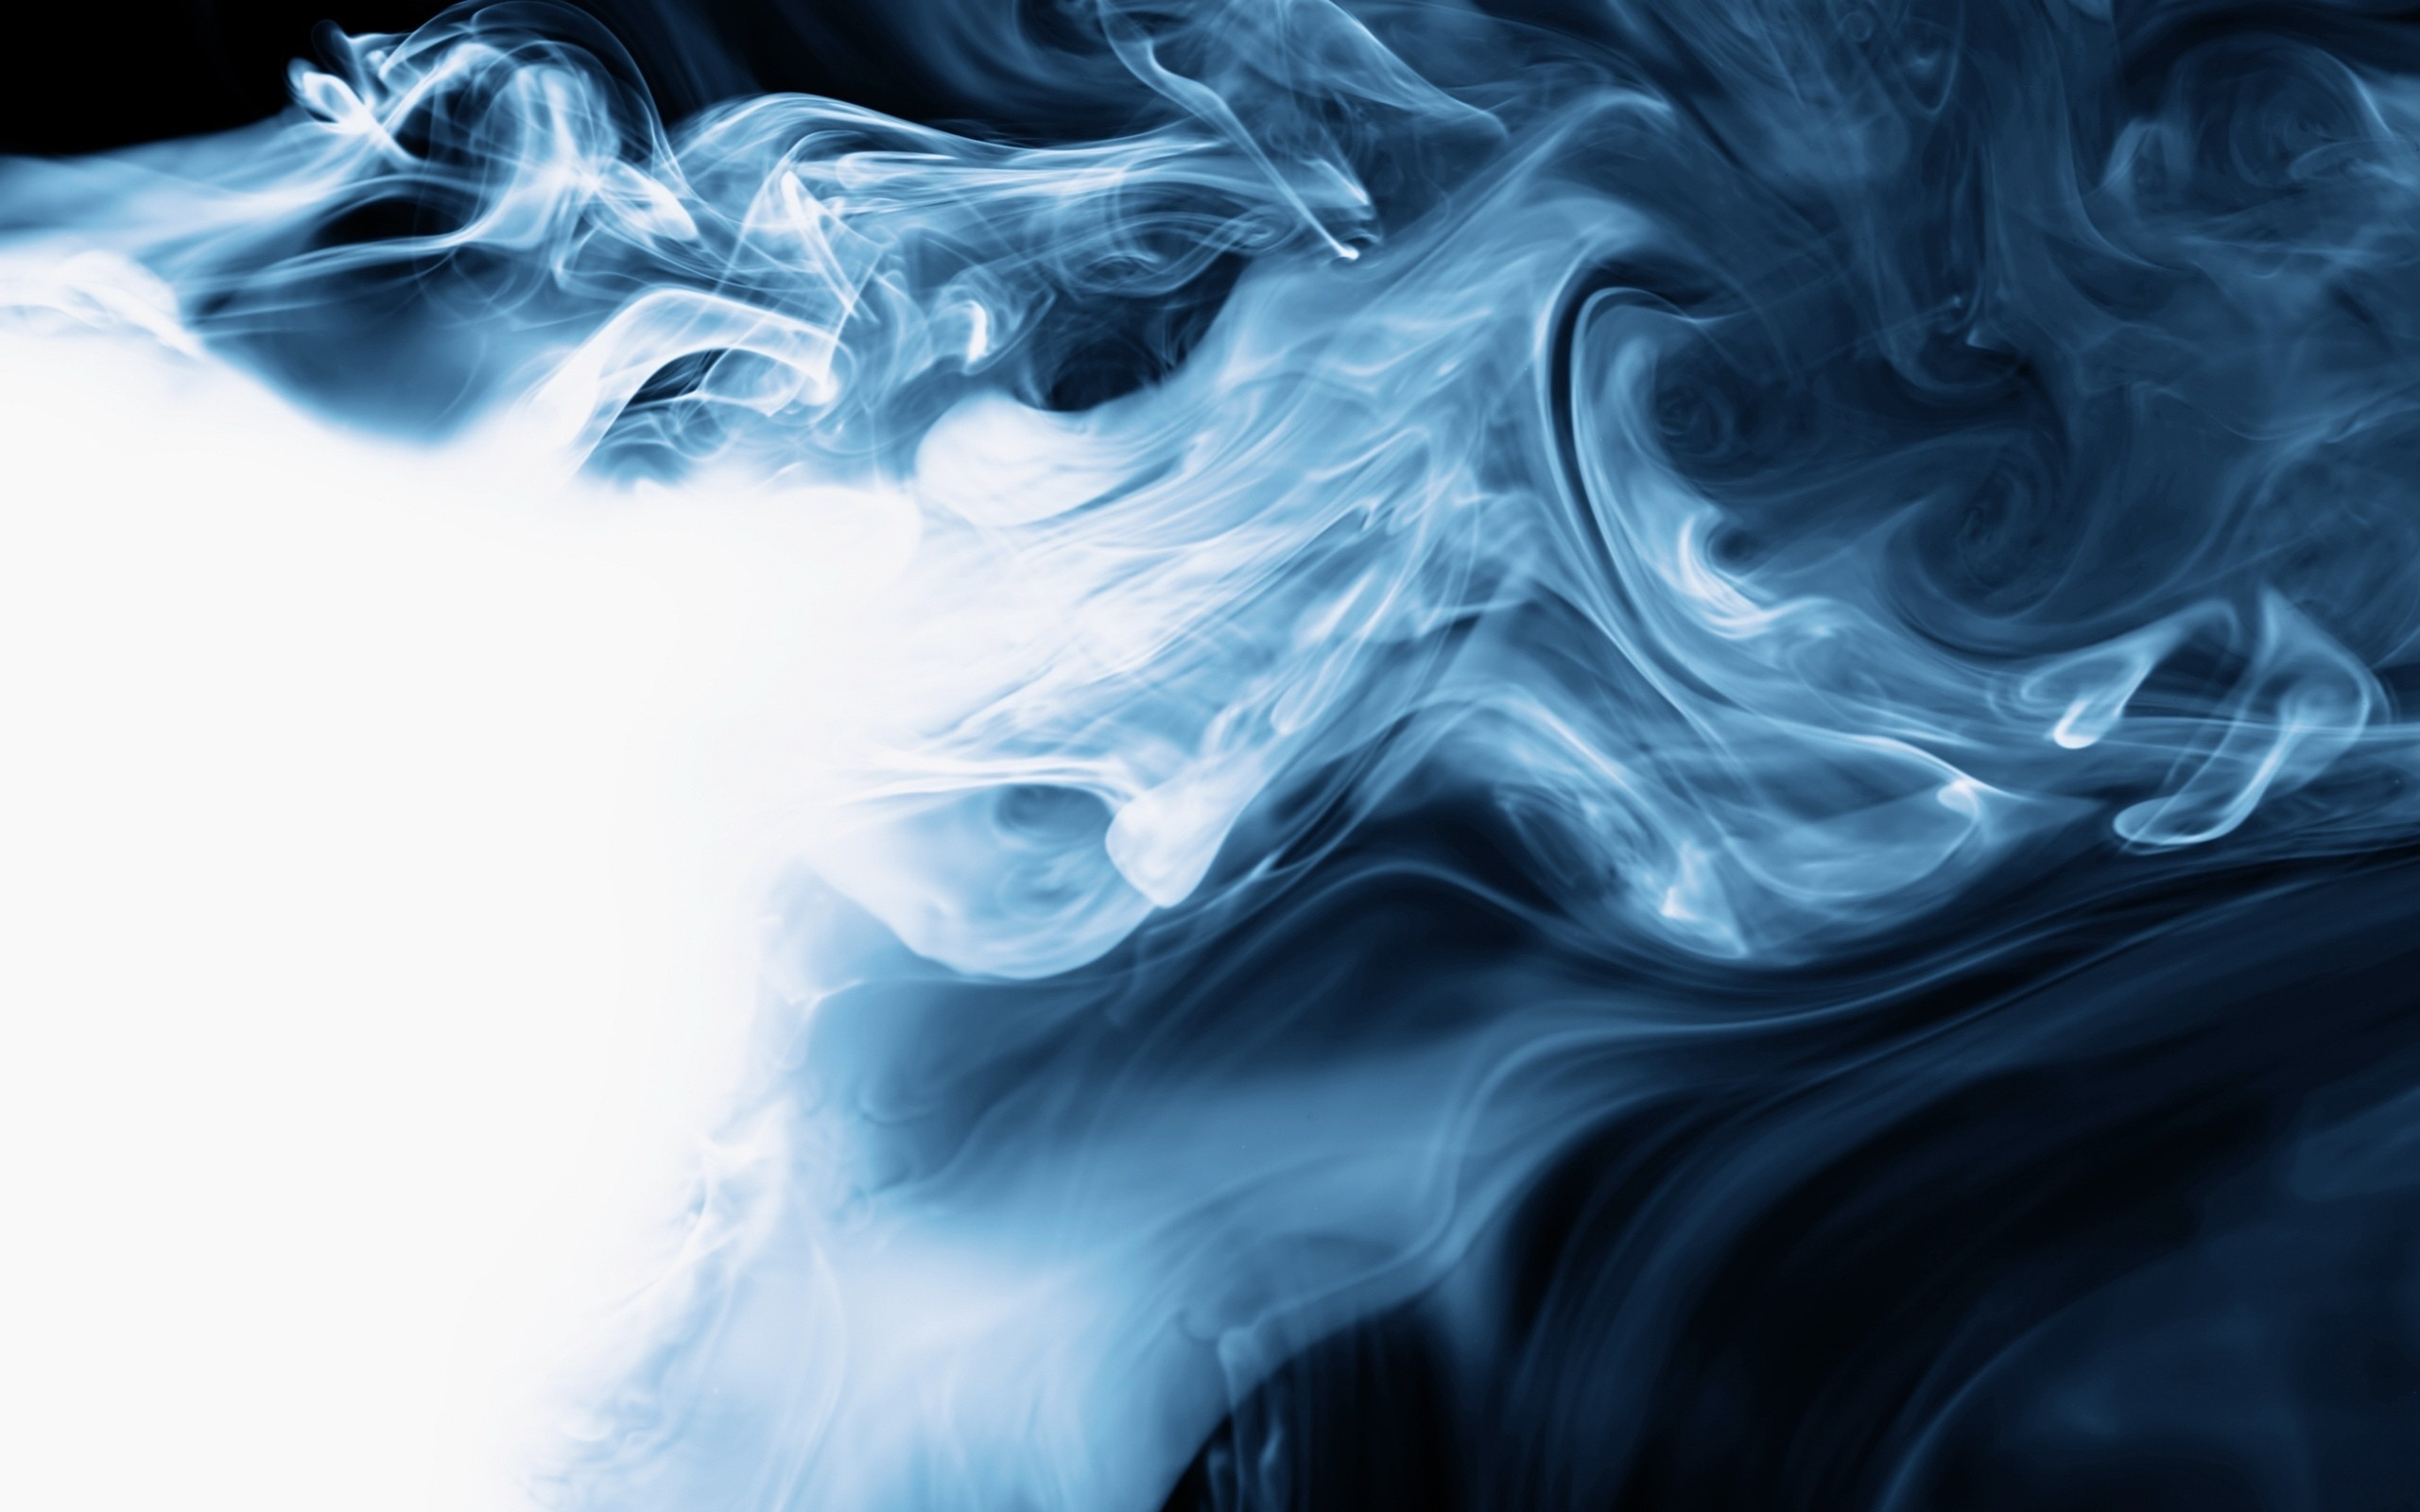 Smoke Background Wallpaper 2560x1600